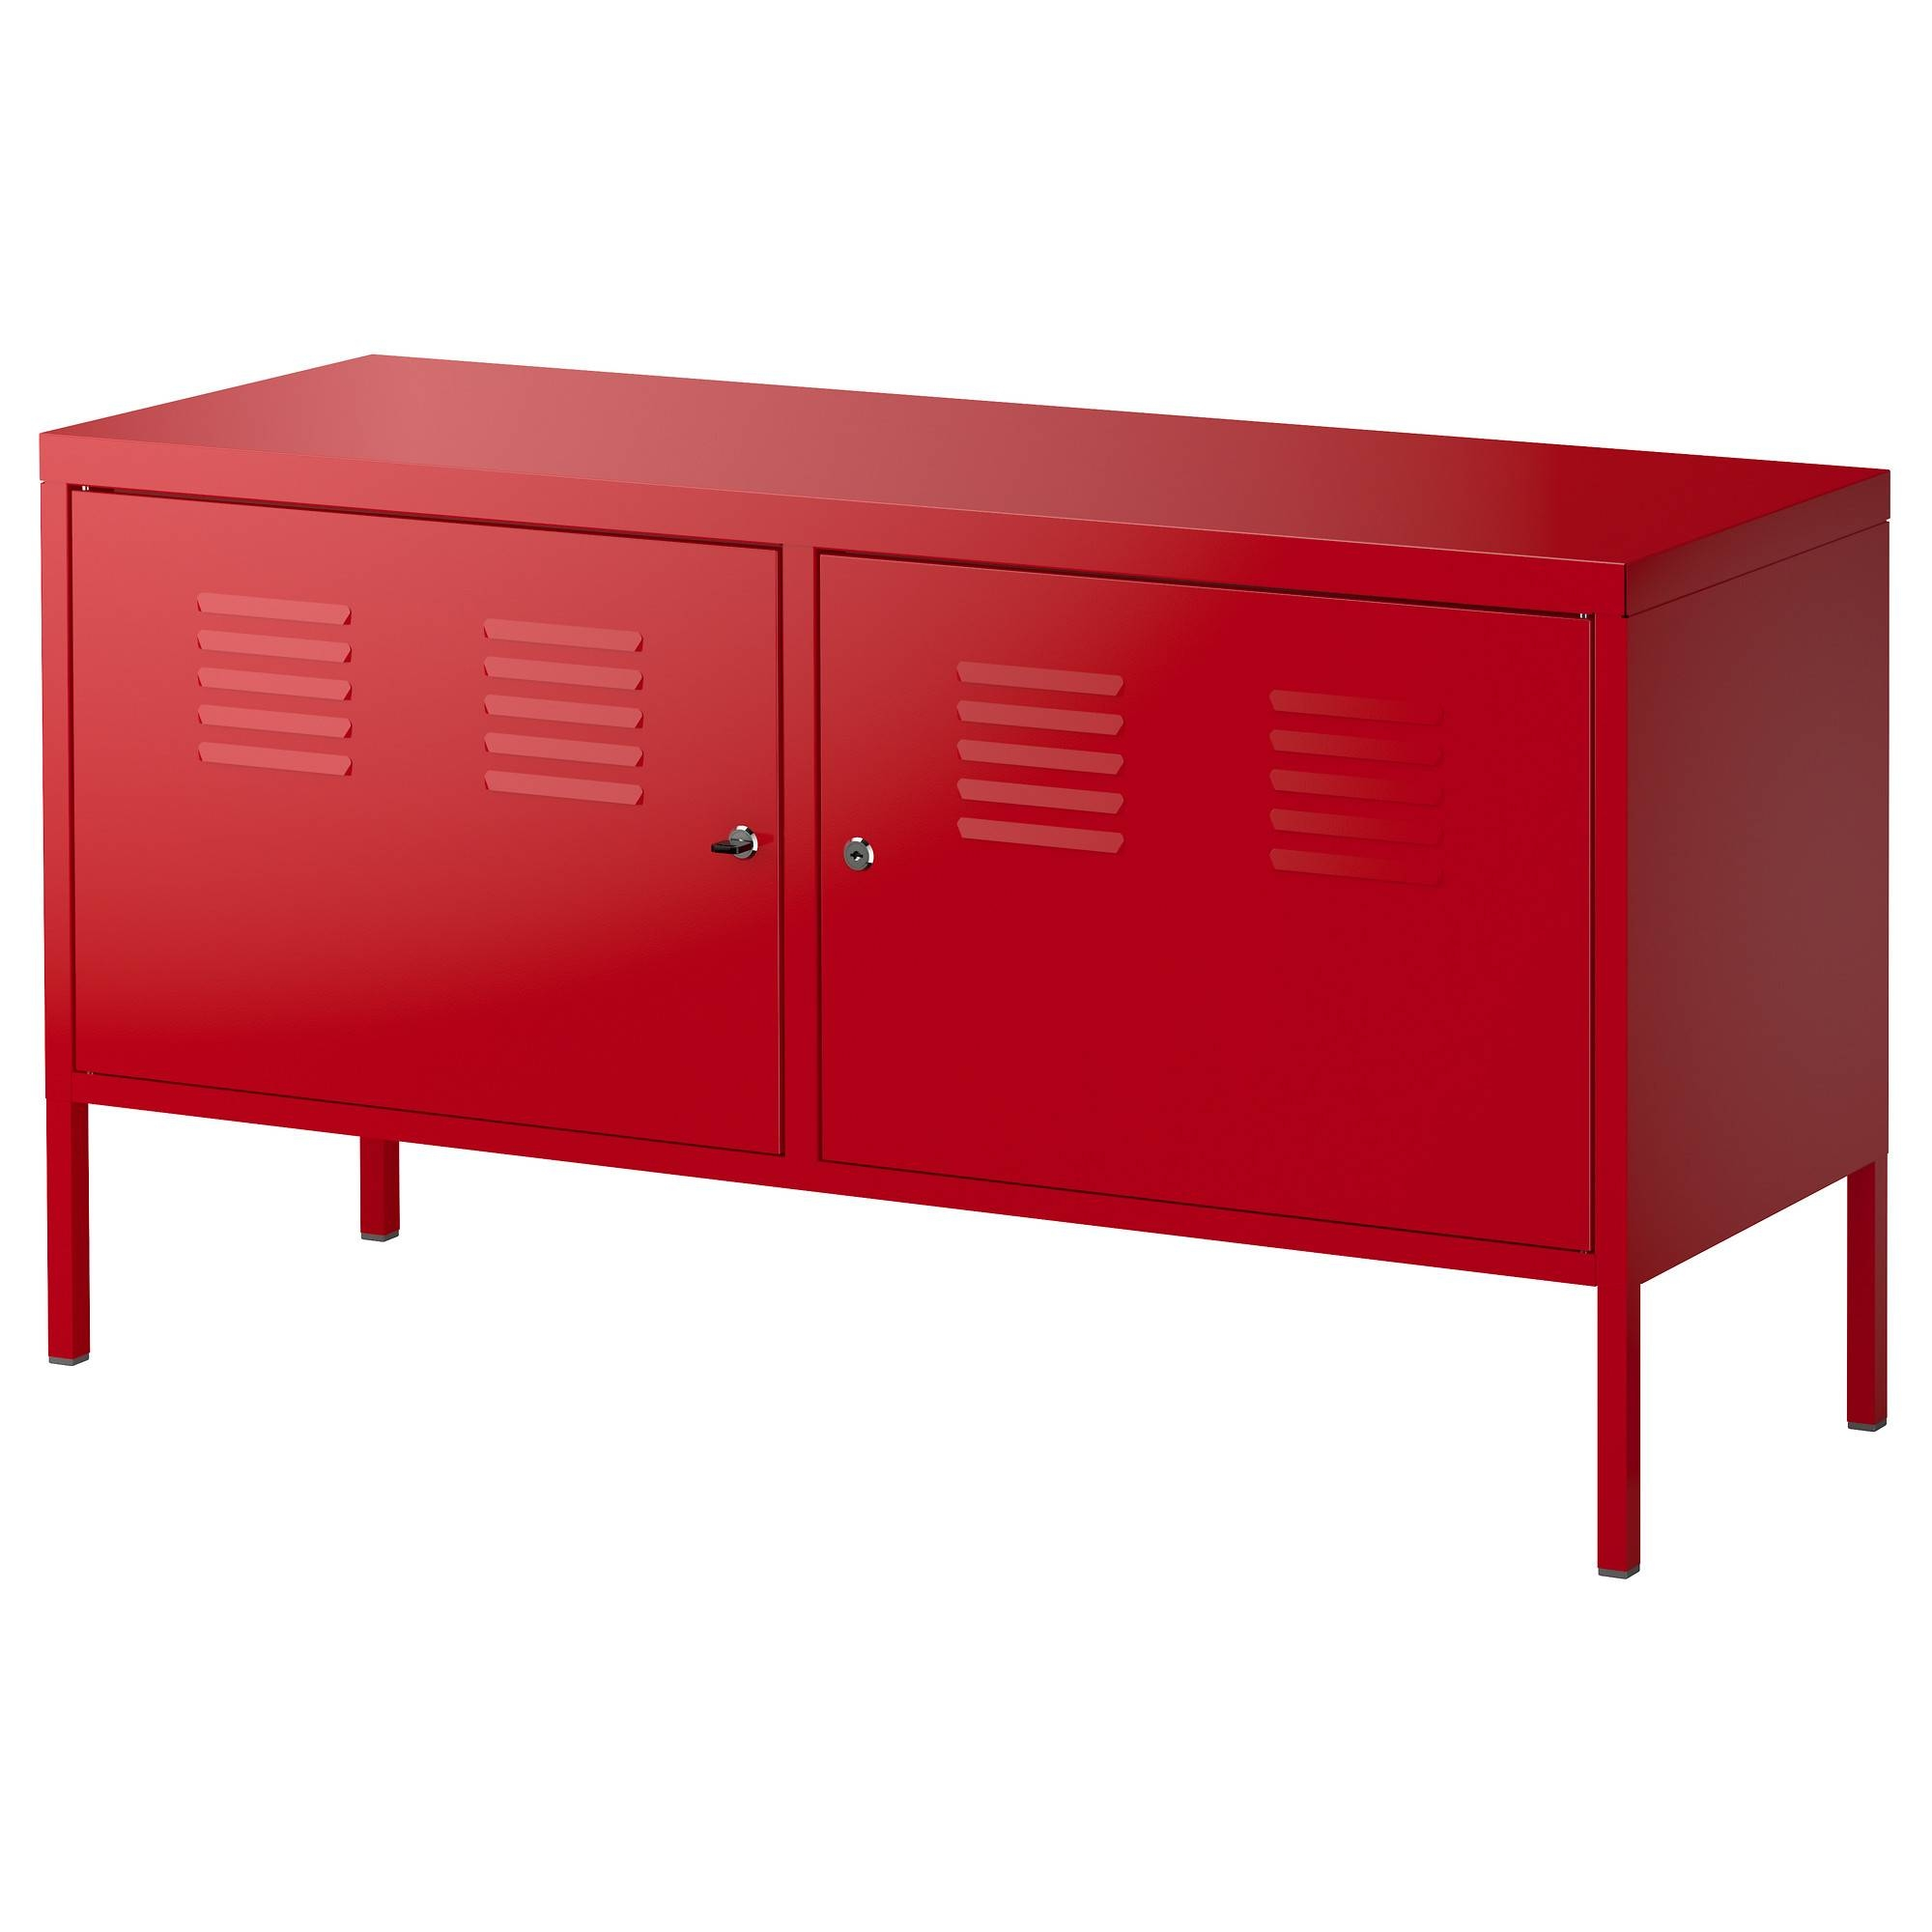 Ikea Ps Cabinet - Red - Ikea with regard to Red Sideboards Buffets (Image 3 of 15)